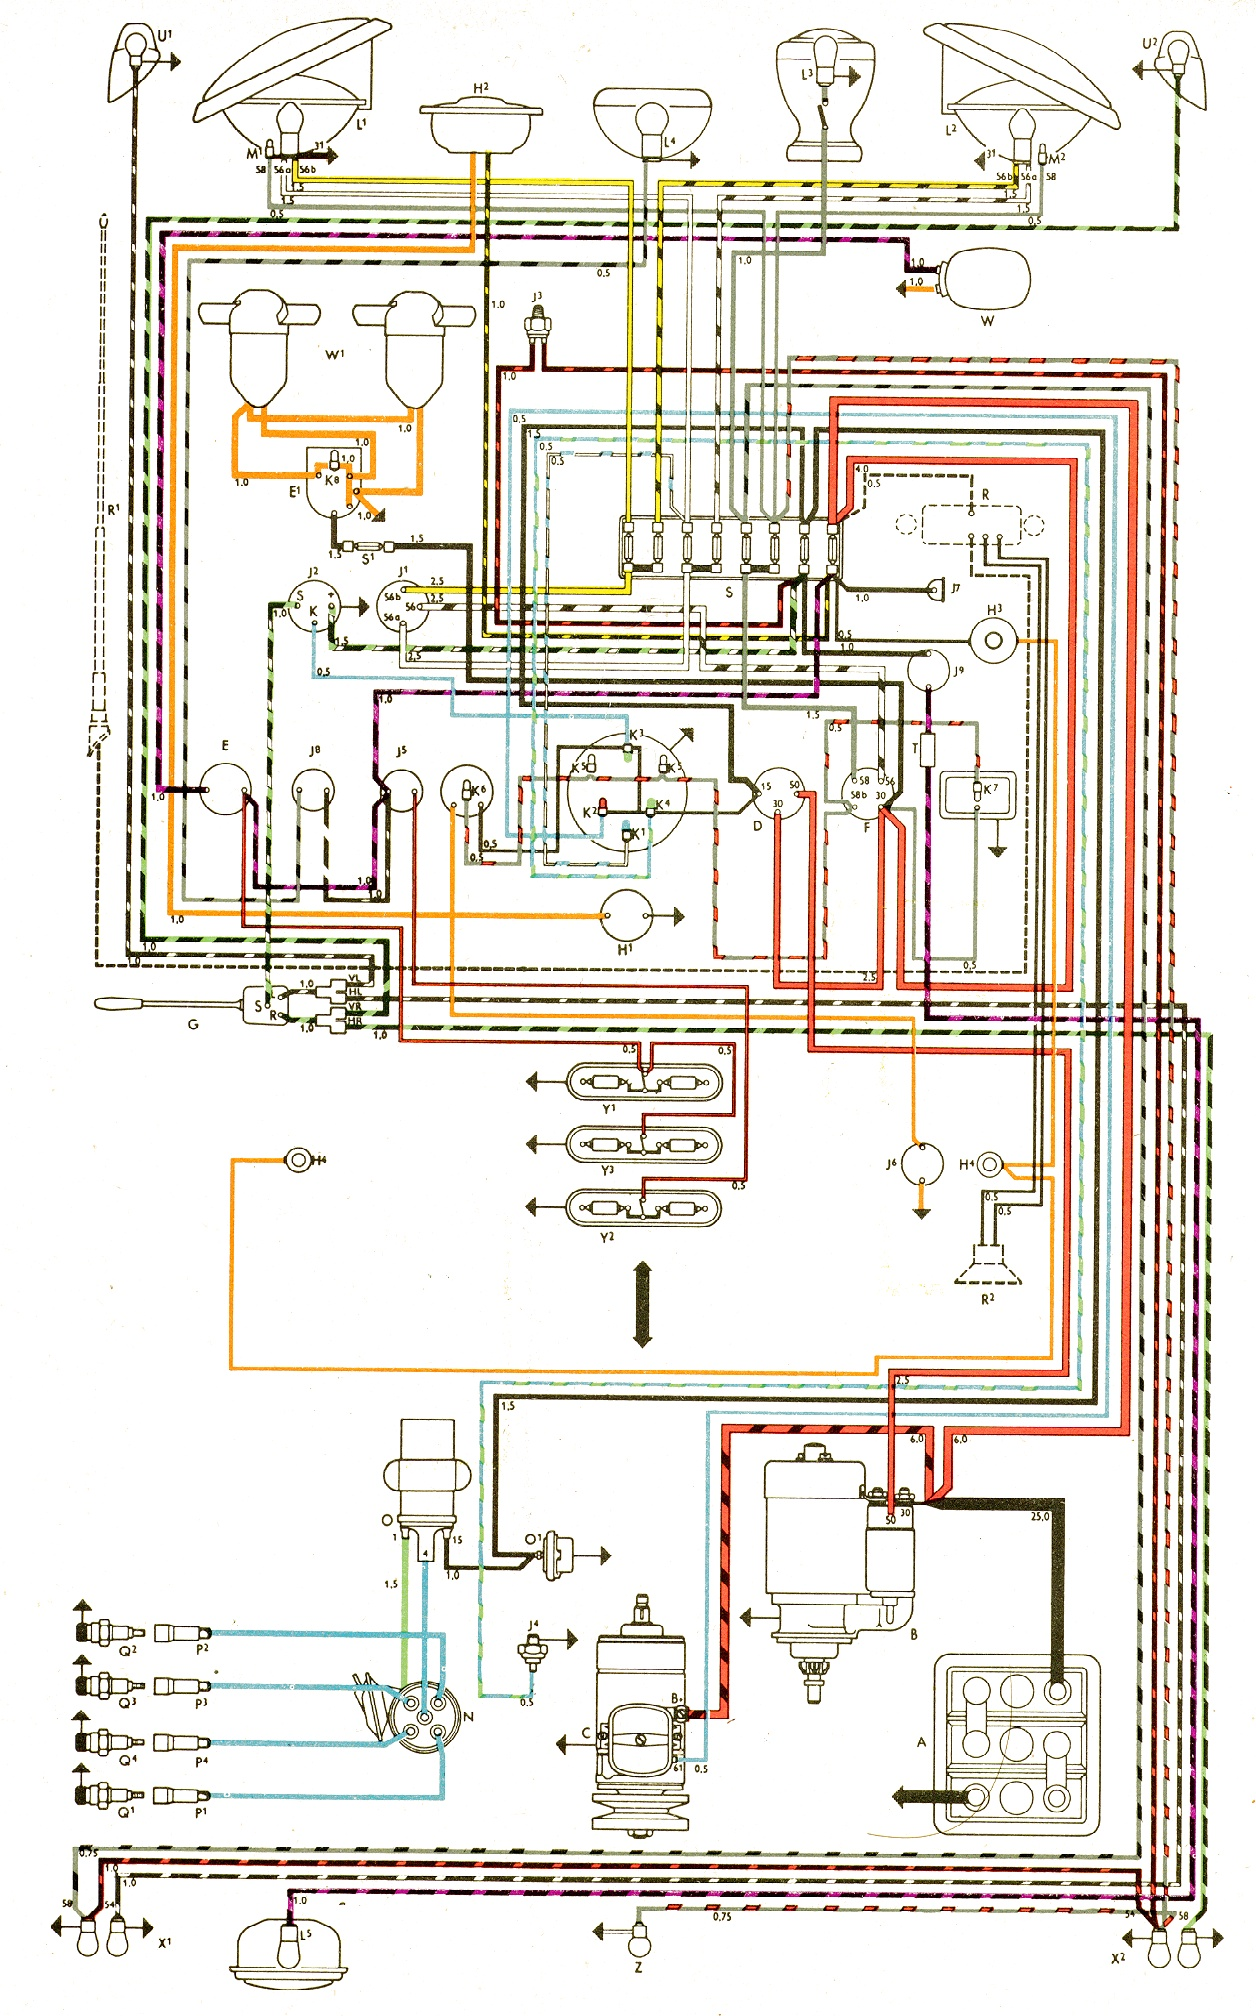 bus 62 glaval bus wiring diagram 2000 thomas bus \u2022 wiring diagrams j mci bus wiring schematic at crackthecode.co